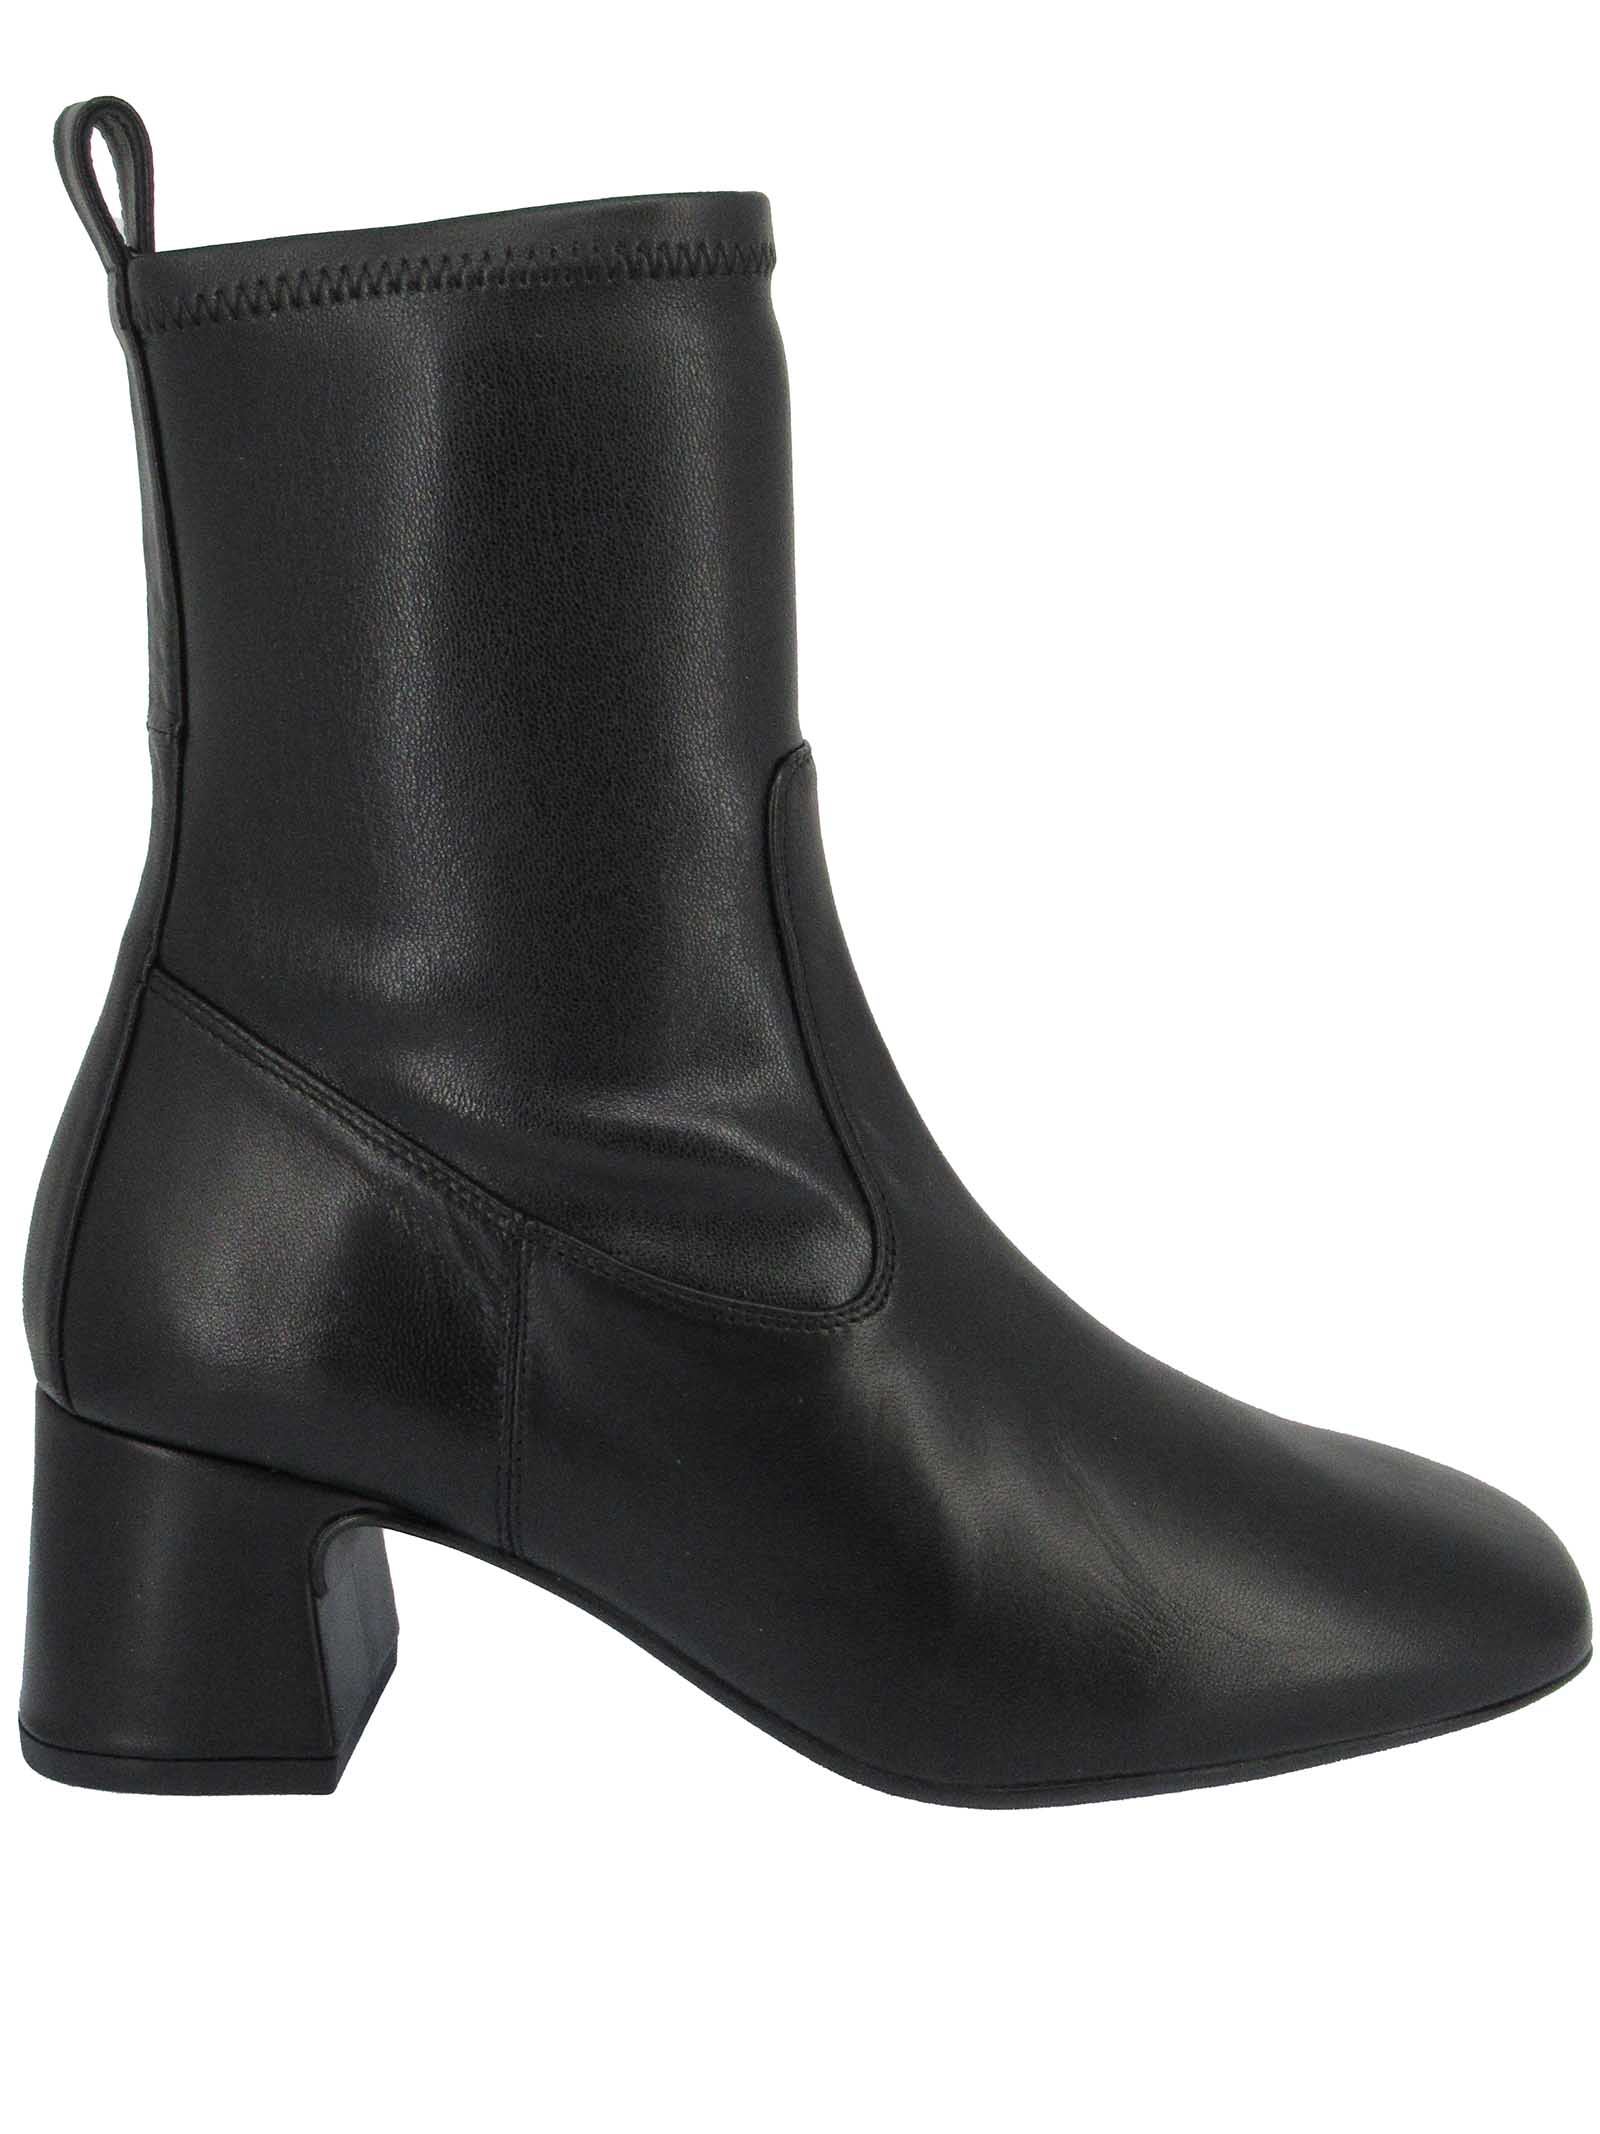 Women's Shoes Ankle Boots in Black Elasticized Eco-Leather with Heel and Square Toe Unisa   Ankle Boots   MICO001